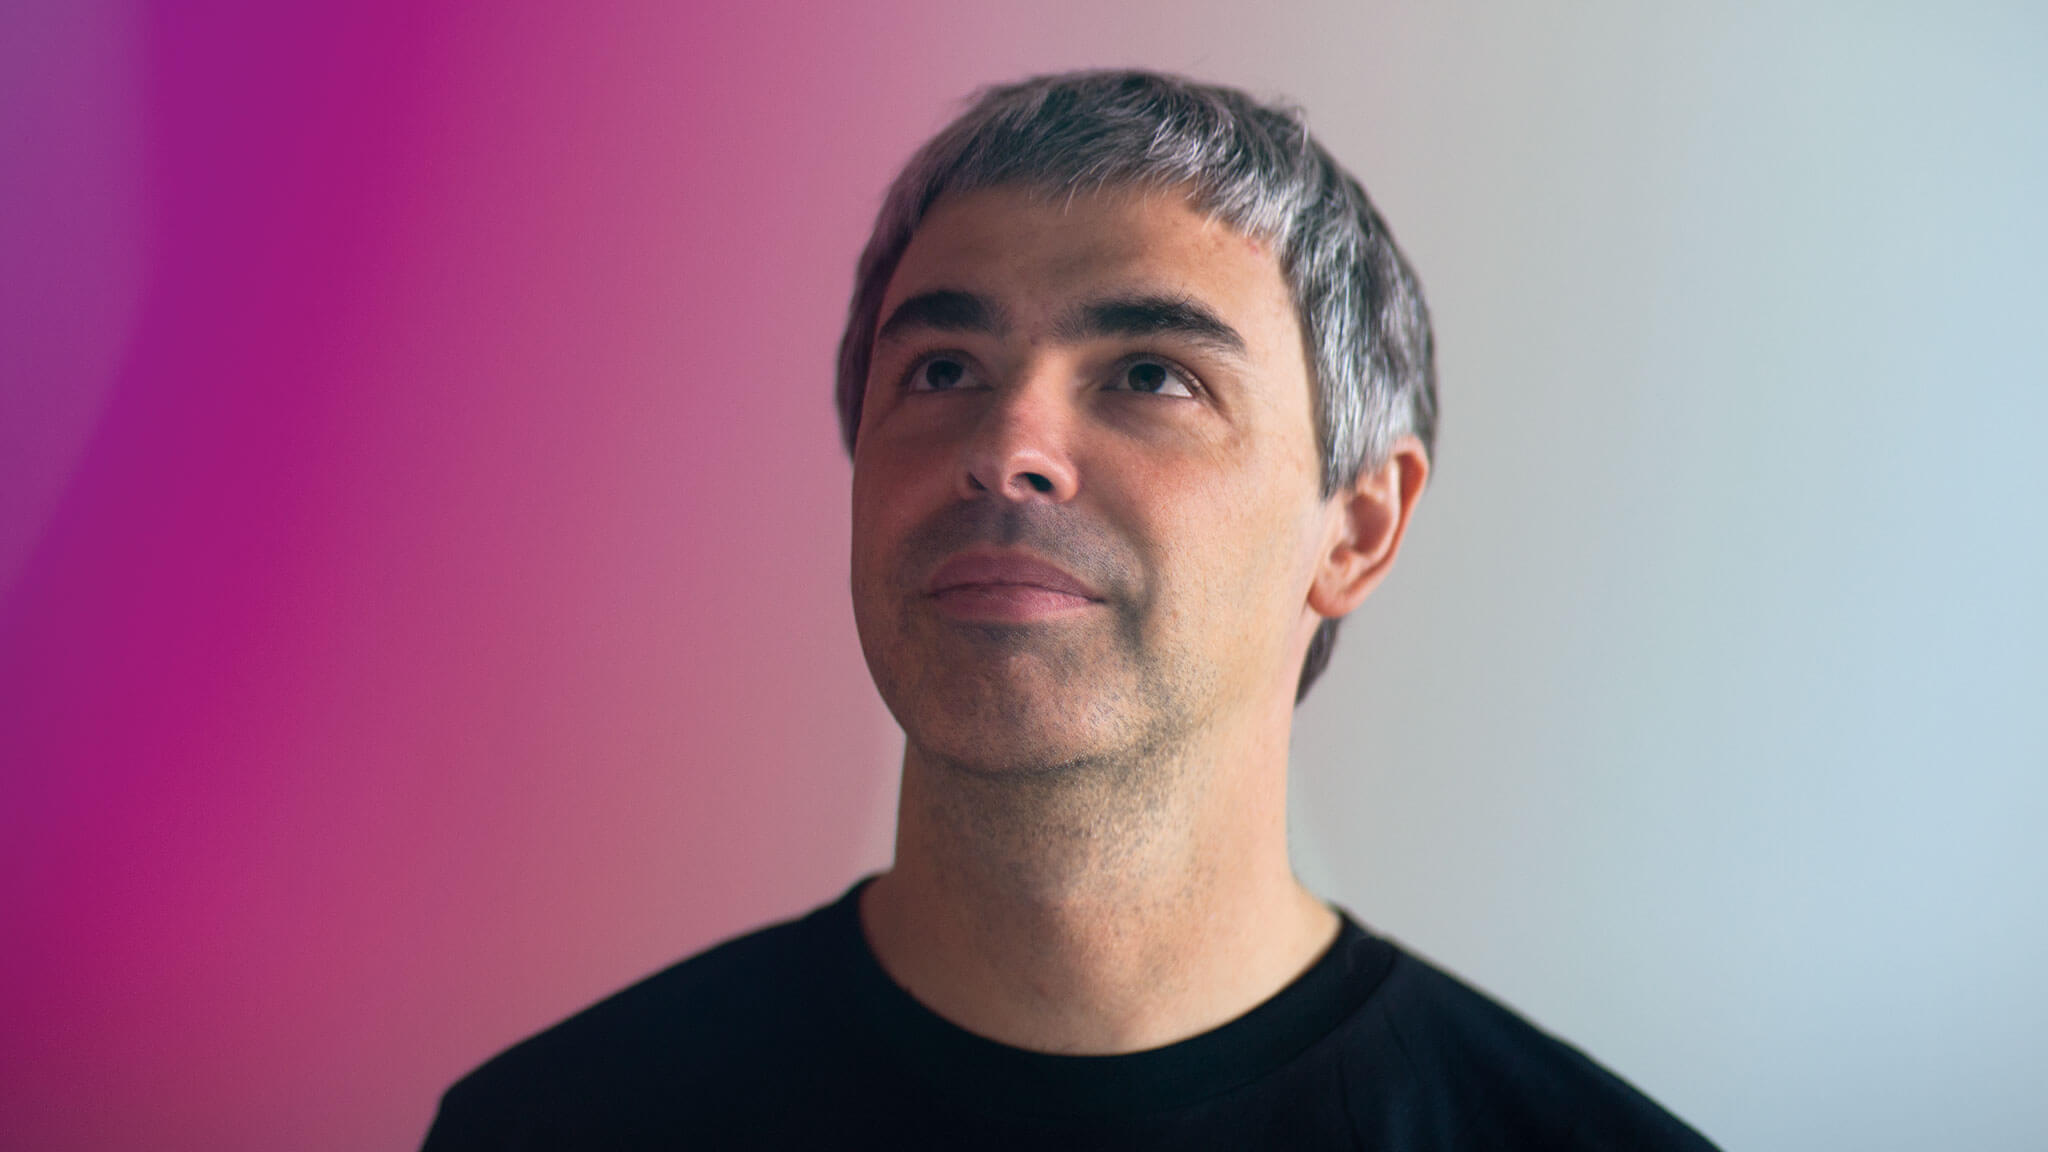 Larry Page Biography, Age